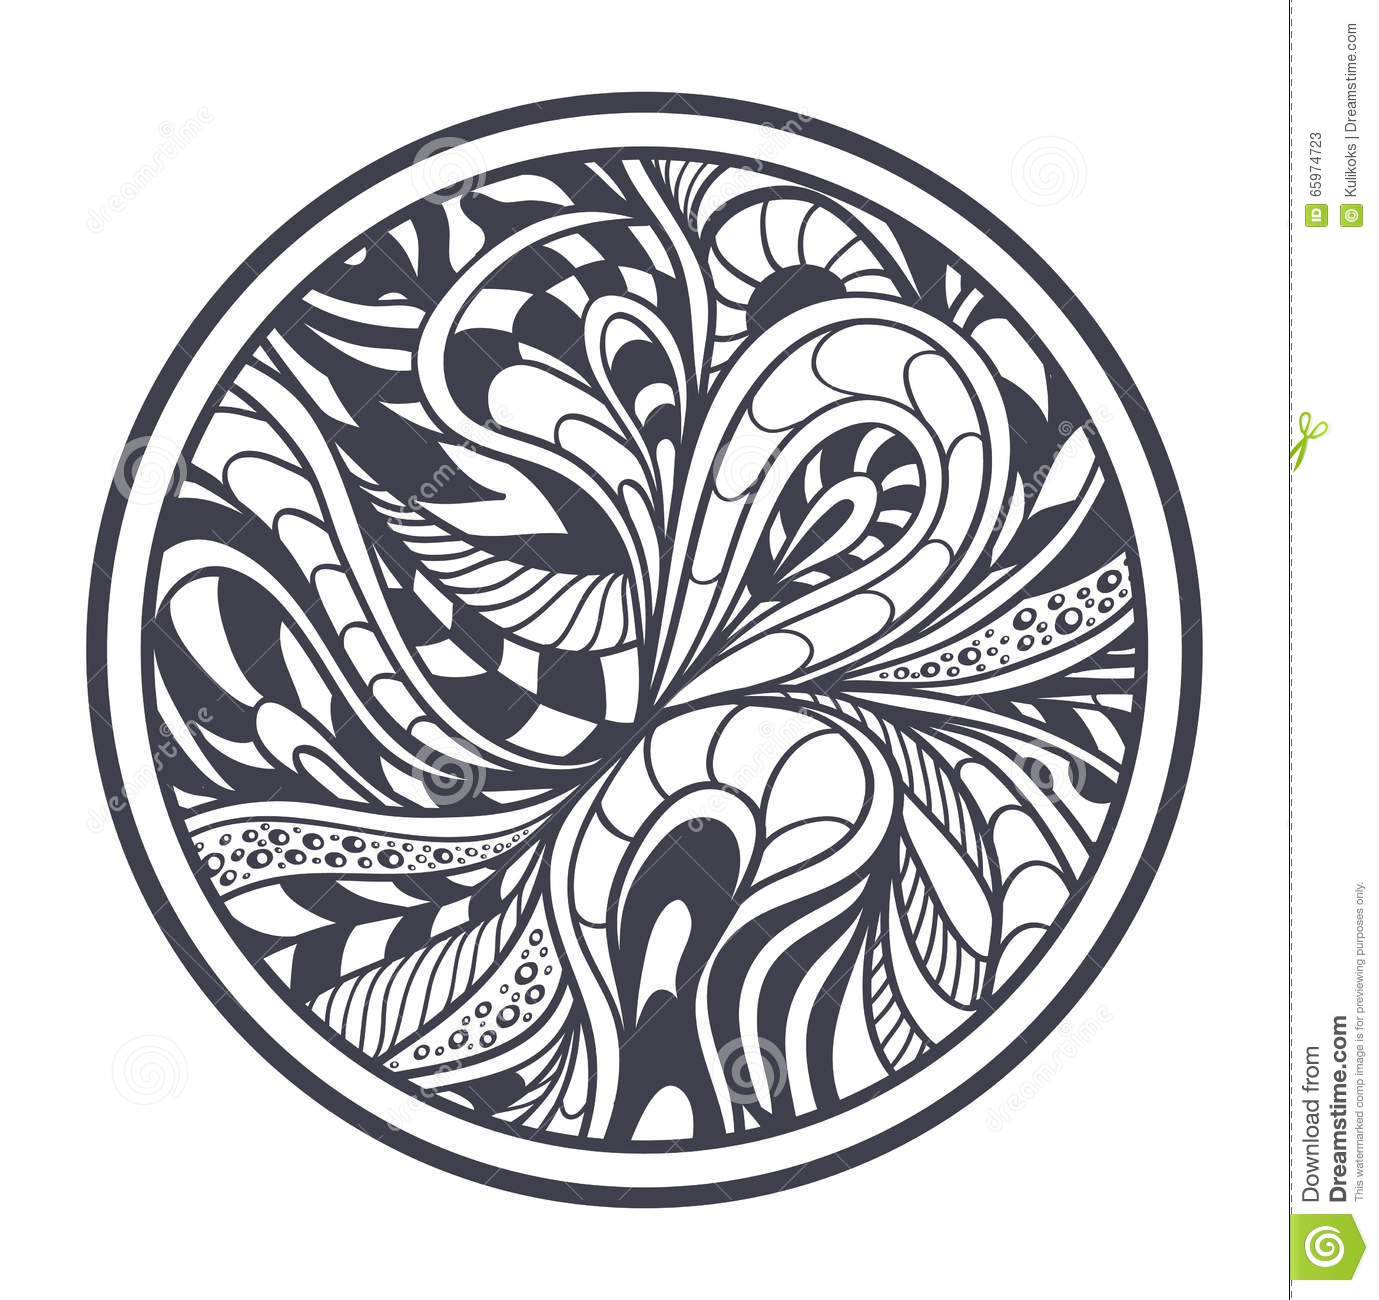 Abstract Circle Coloring Pages : Abstract background in zen tangle doodle style black